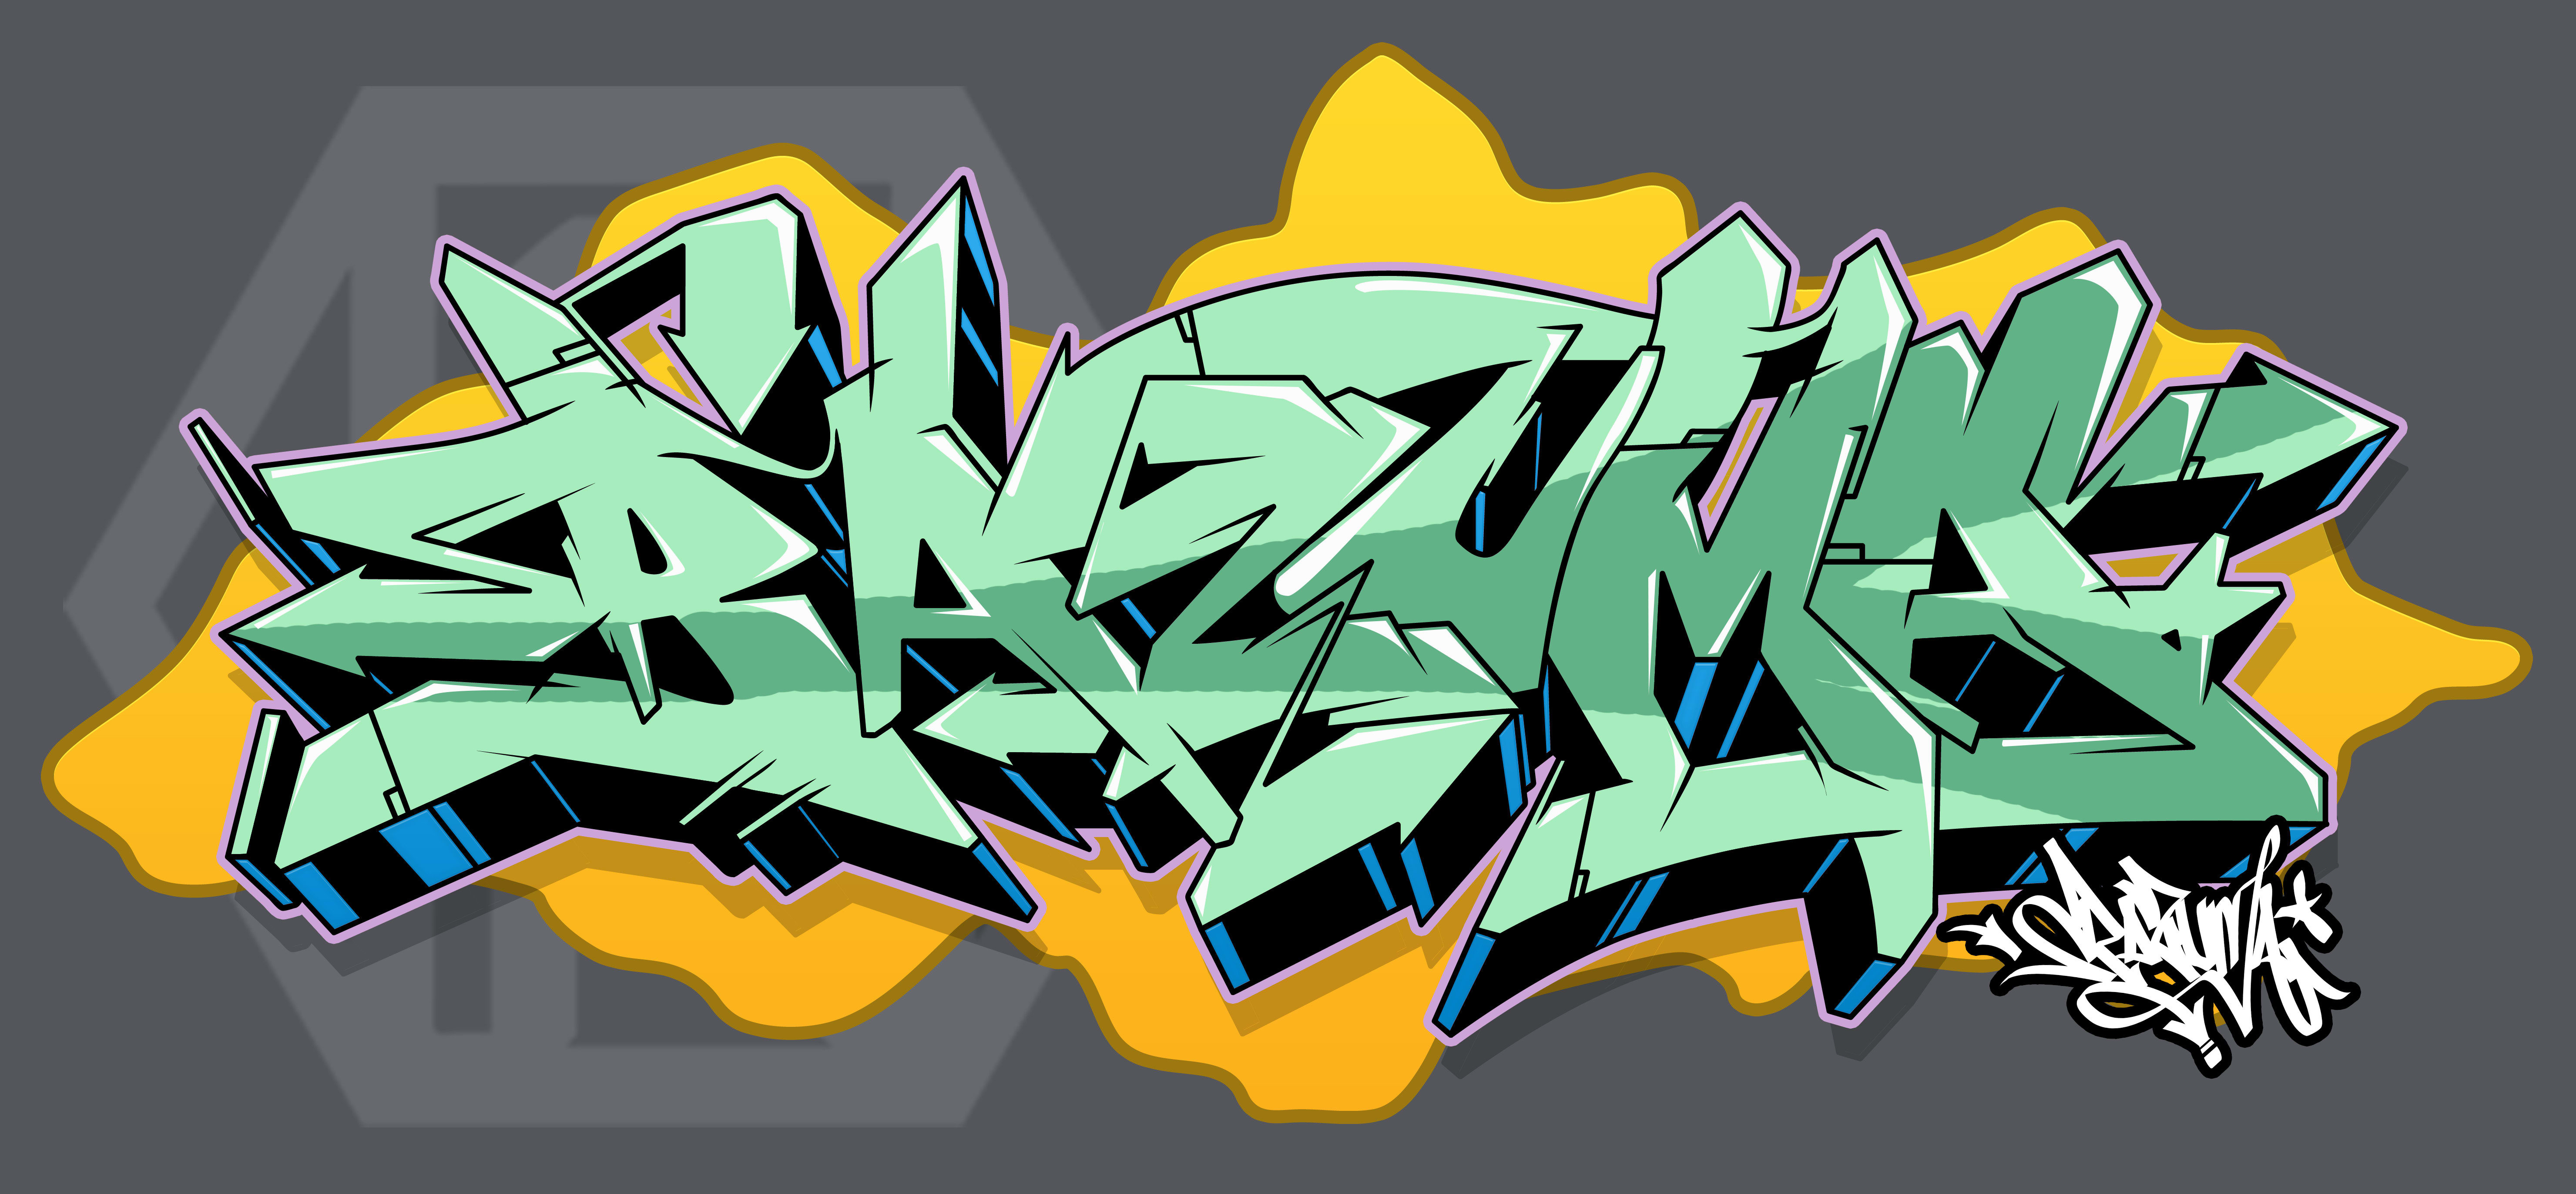 I will creat best name graffiti logo for you